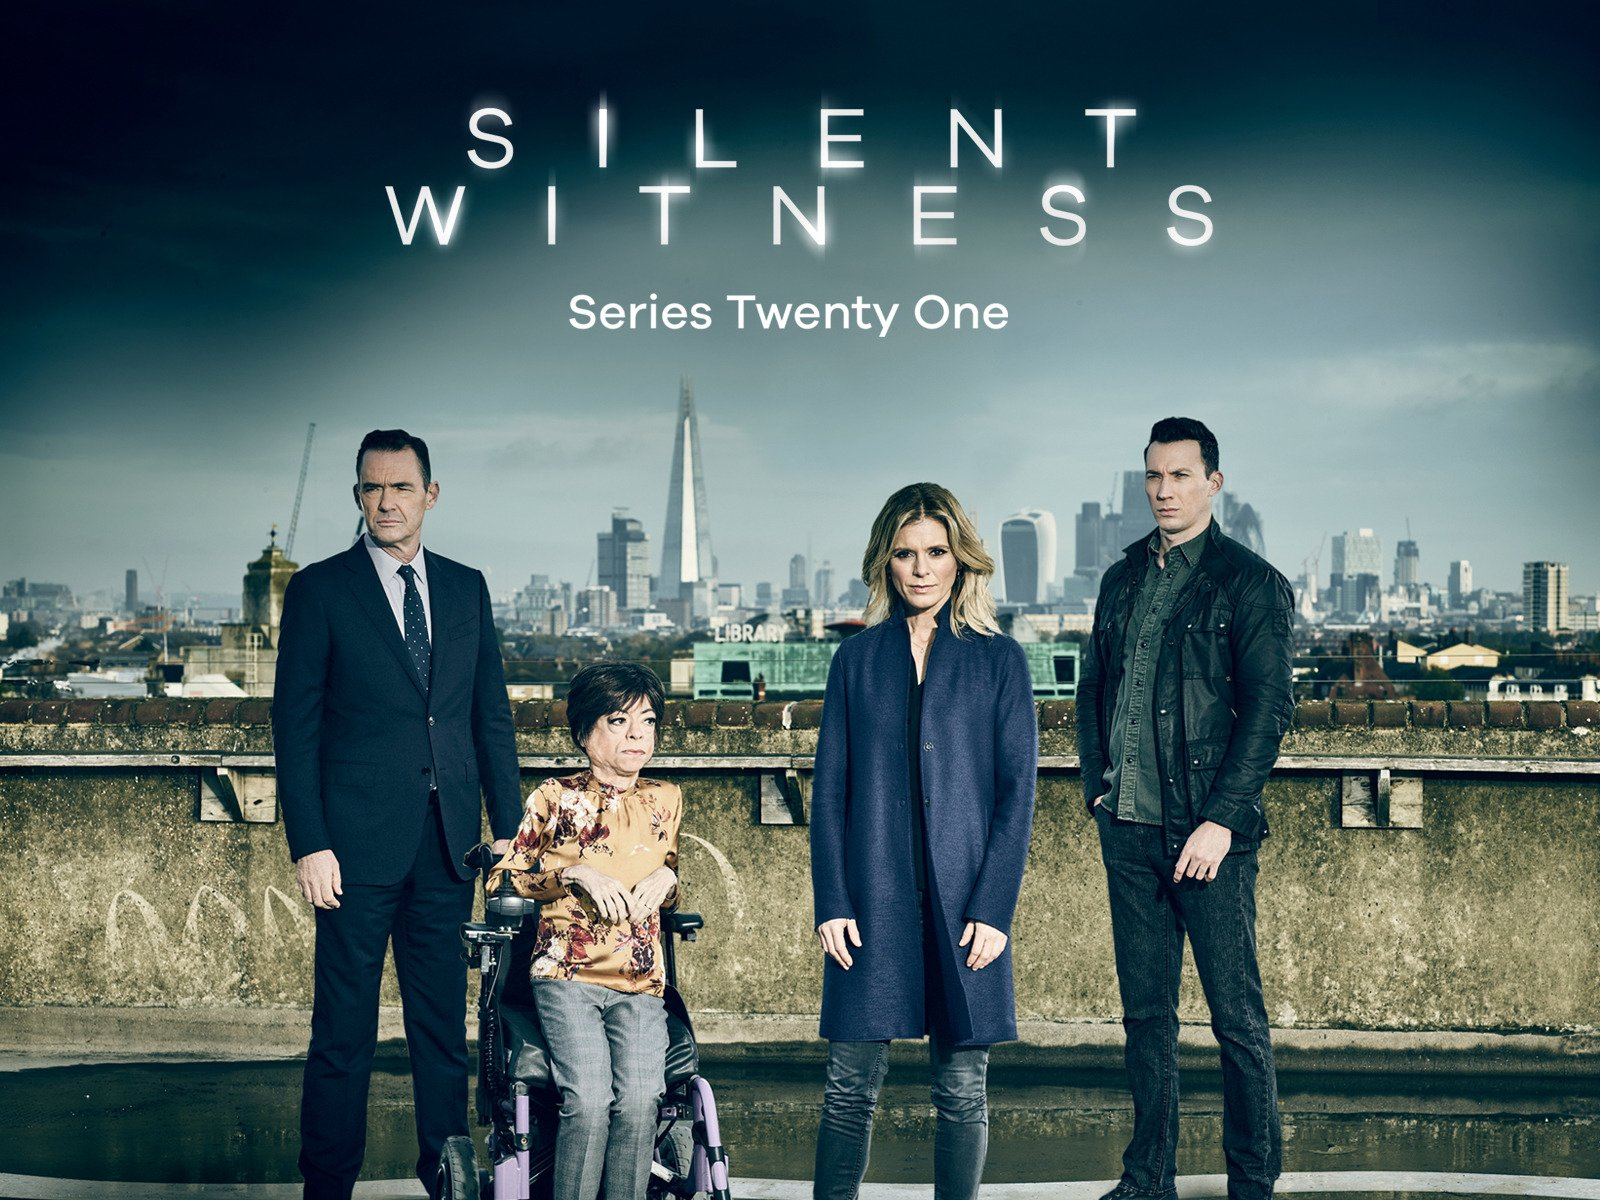 silent witness movie download